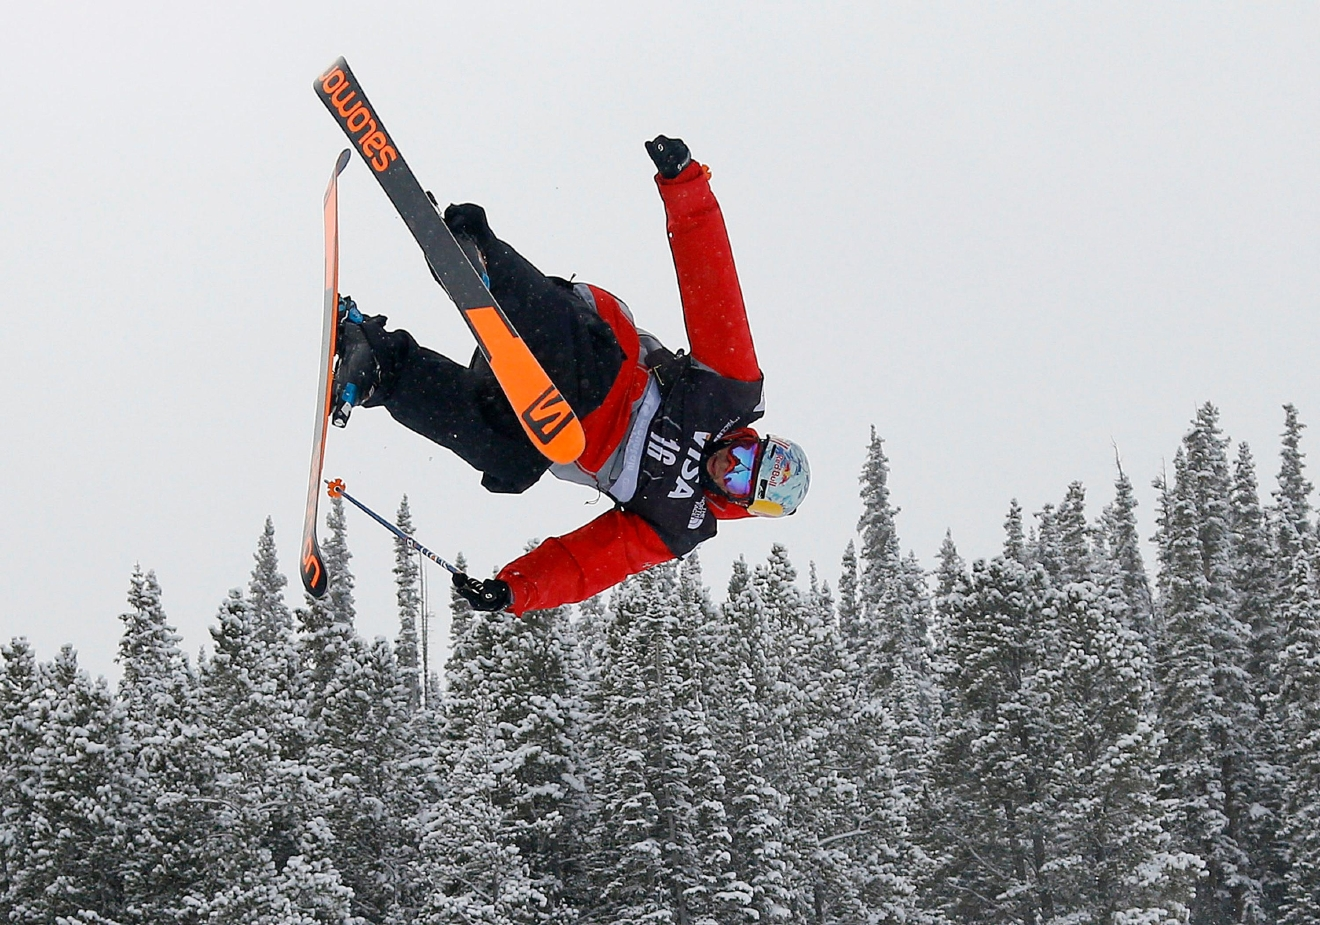 FILE - In this Dec. 21, 2013, file photo, Bobby Brown flies off a jump during the World Cup U.S. Grand Prix slope style freestyle skiing finals in Frisco, Colo. Brown, who has come back from breaking his back, pelvis and both ankles from wipeouts while in competitions, will take part in the Winter X Games this weekend in Aspen, Colo. (AP Photo/Julie Jacobson, file)